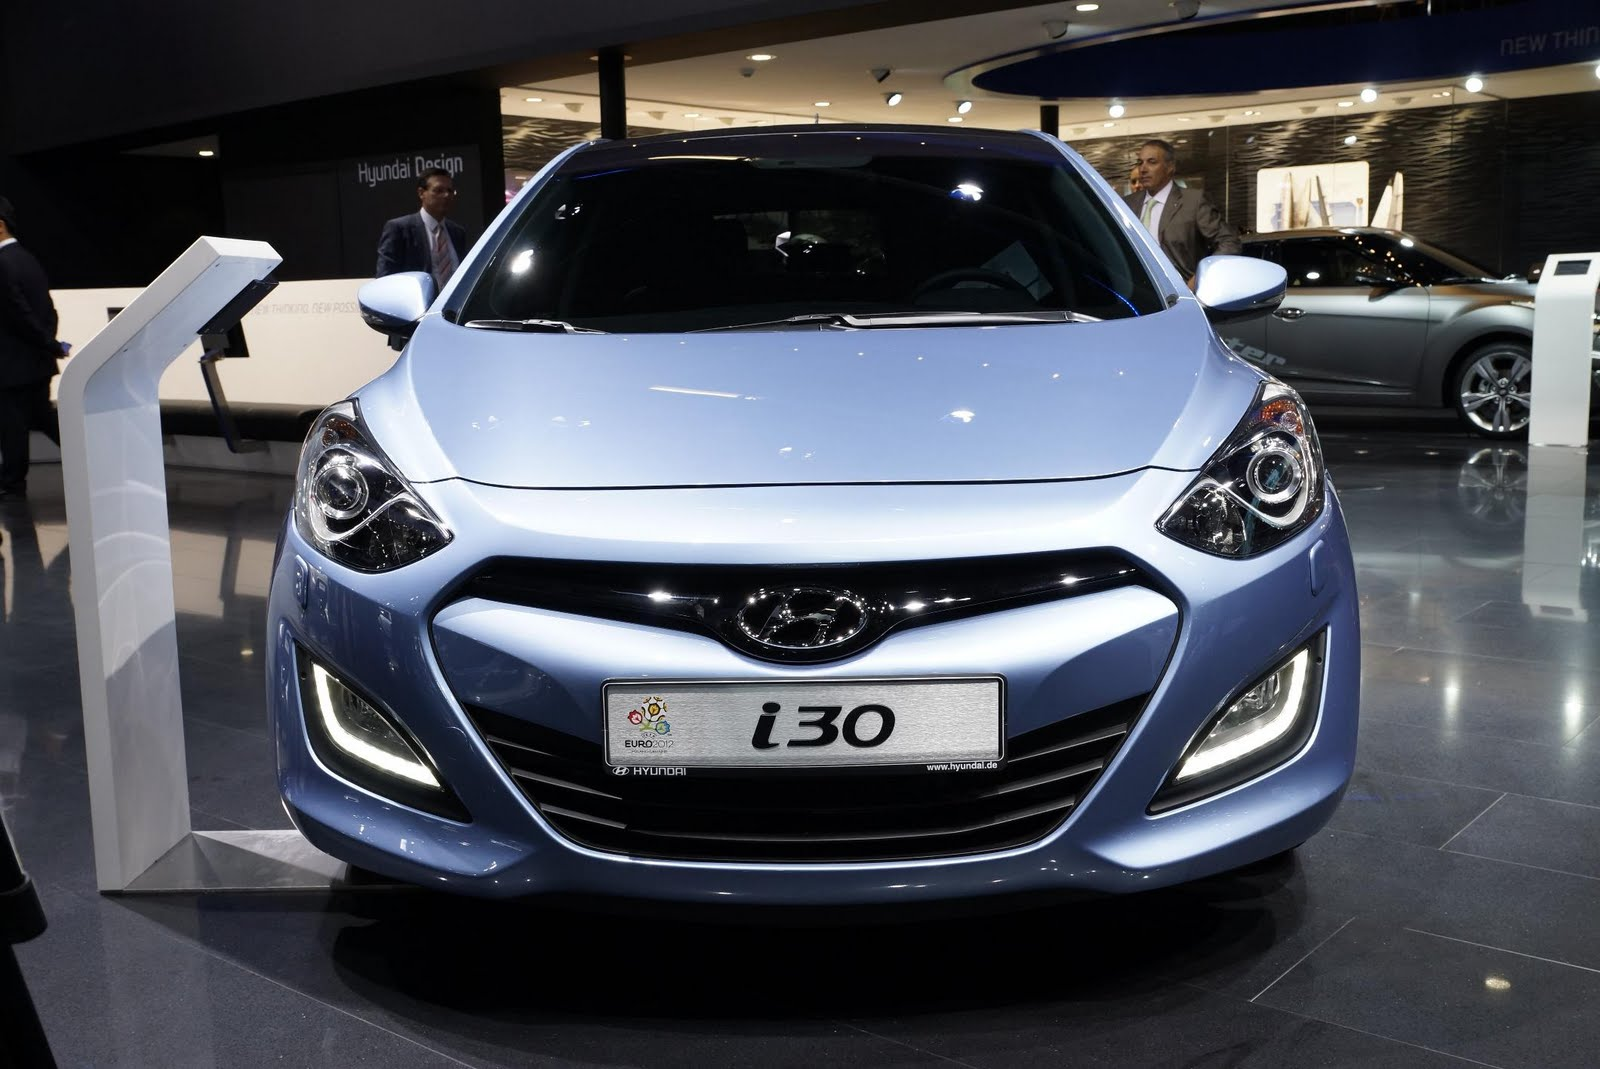 new i30 hyundai appeared on the stand at frankfurt hyundai i30 2012 garage car. Black Bedroom Furniture Sets. Home Design Ideas